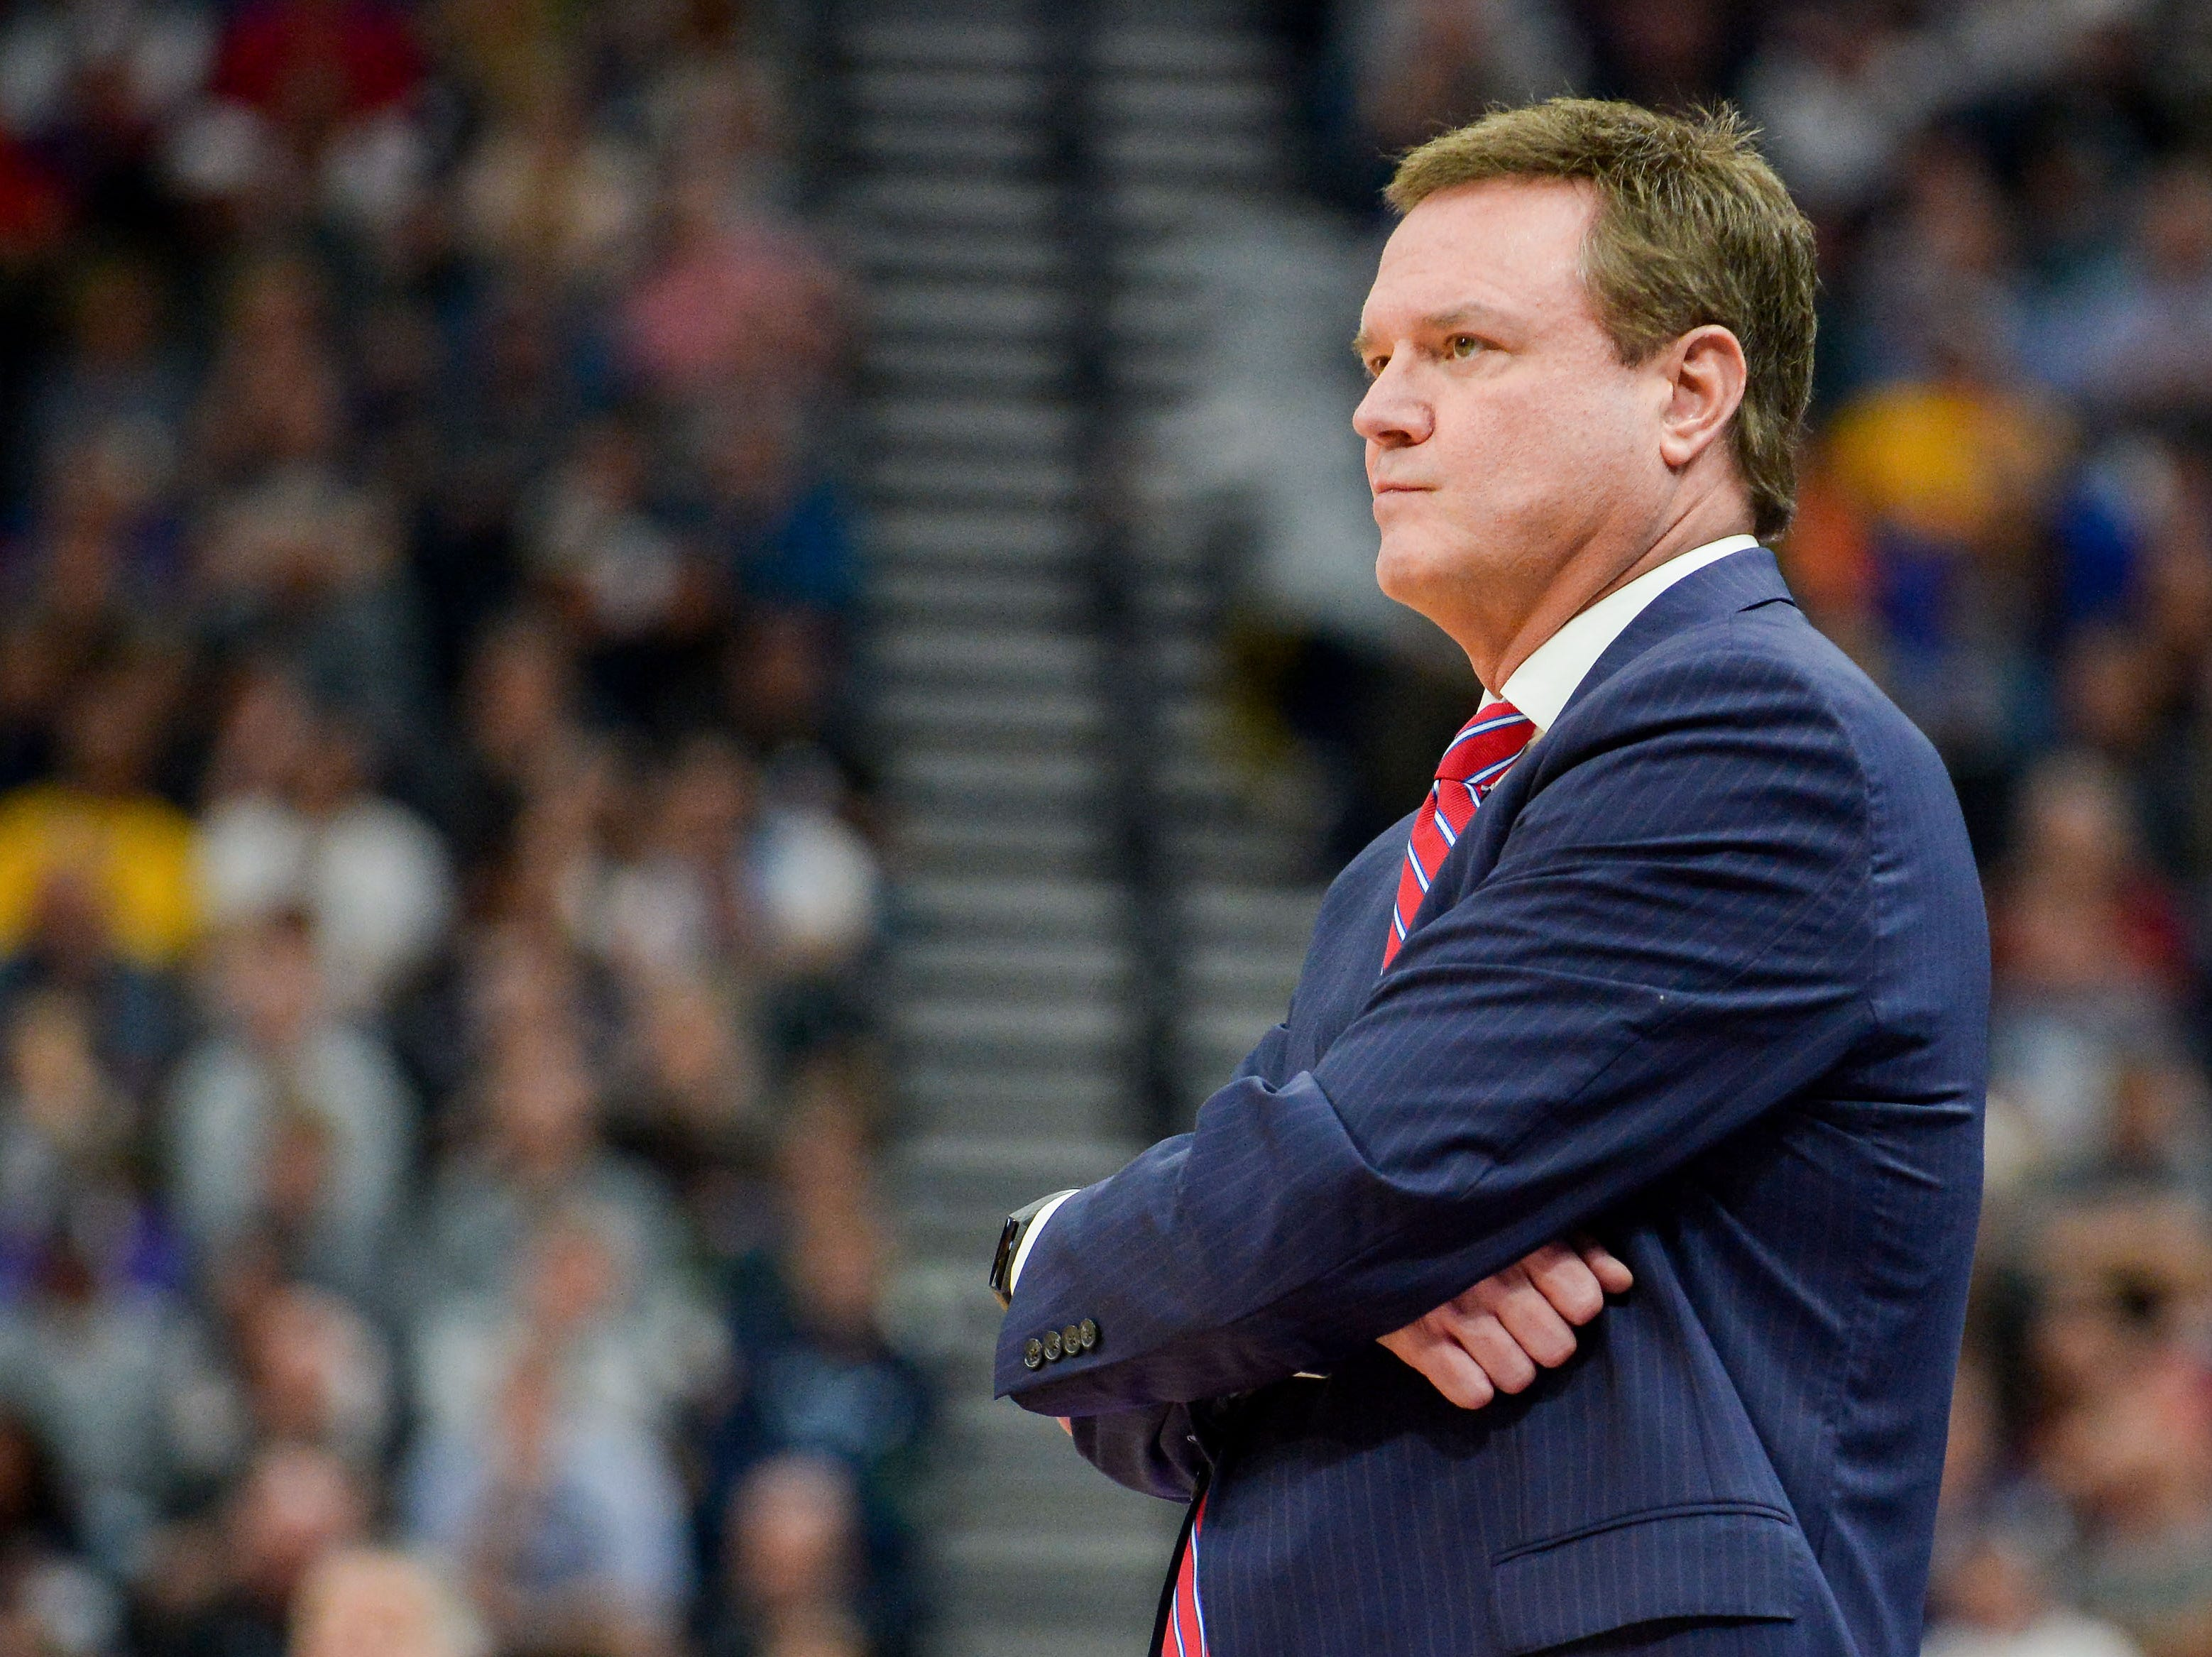 Mar 23, 2019; Salt Lake City, UT, USA; Kansas Jayhawks head coach Bill Self looks on during the first half in the second round of the 2019 NCAA Tournament against the Auburn Tigers at Vivint Smart Home Arena. Mandatory Credit: Gary A. Vasquez-USA TODAY Sports